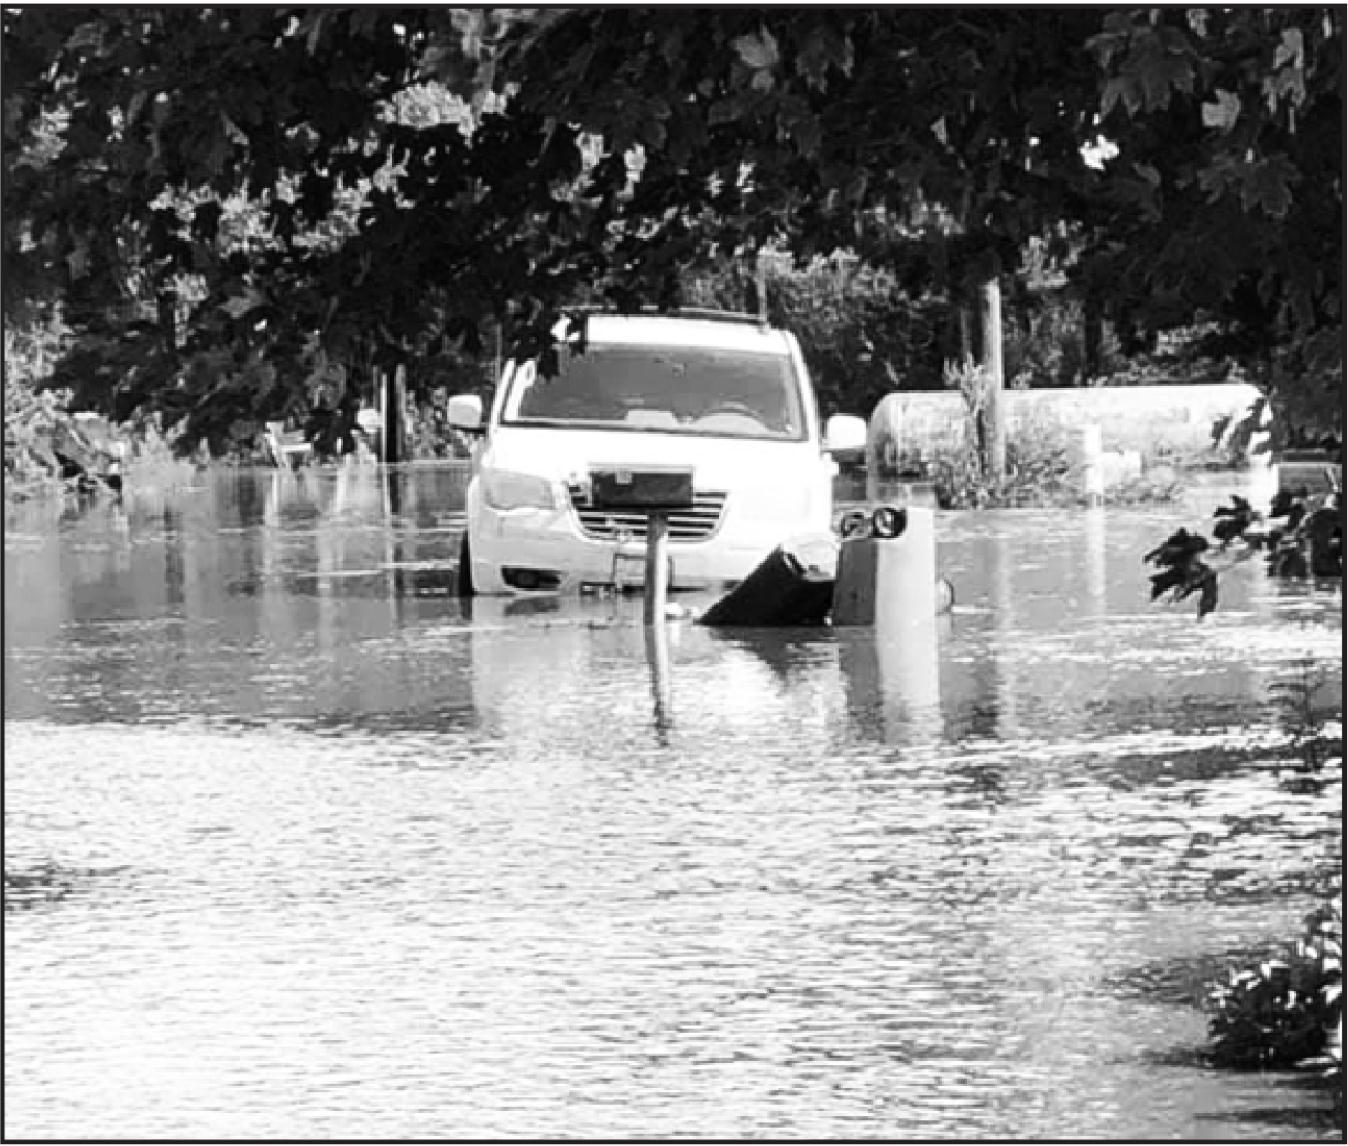 The town of Simpson was closed on Saturday coming from Highway 24 as flood waters were received with over 7 inches of rain in areas on Friday and Saturday.